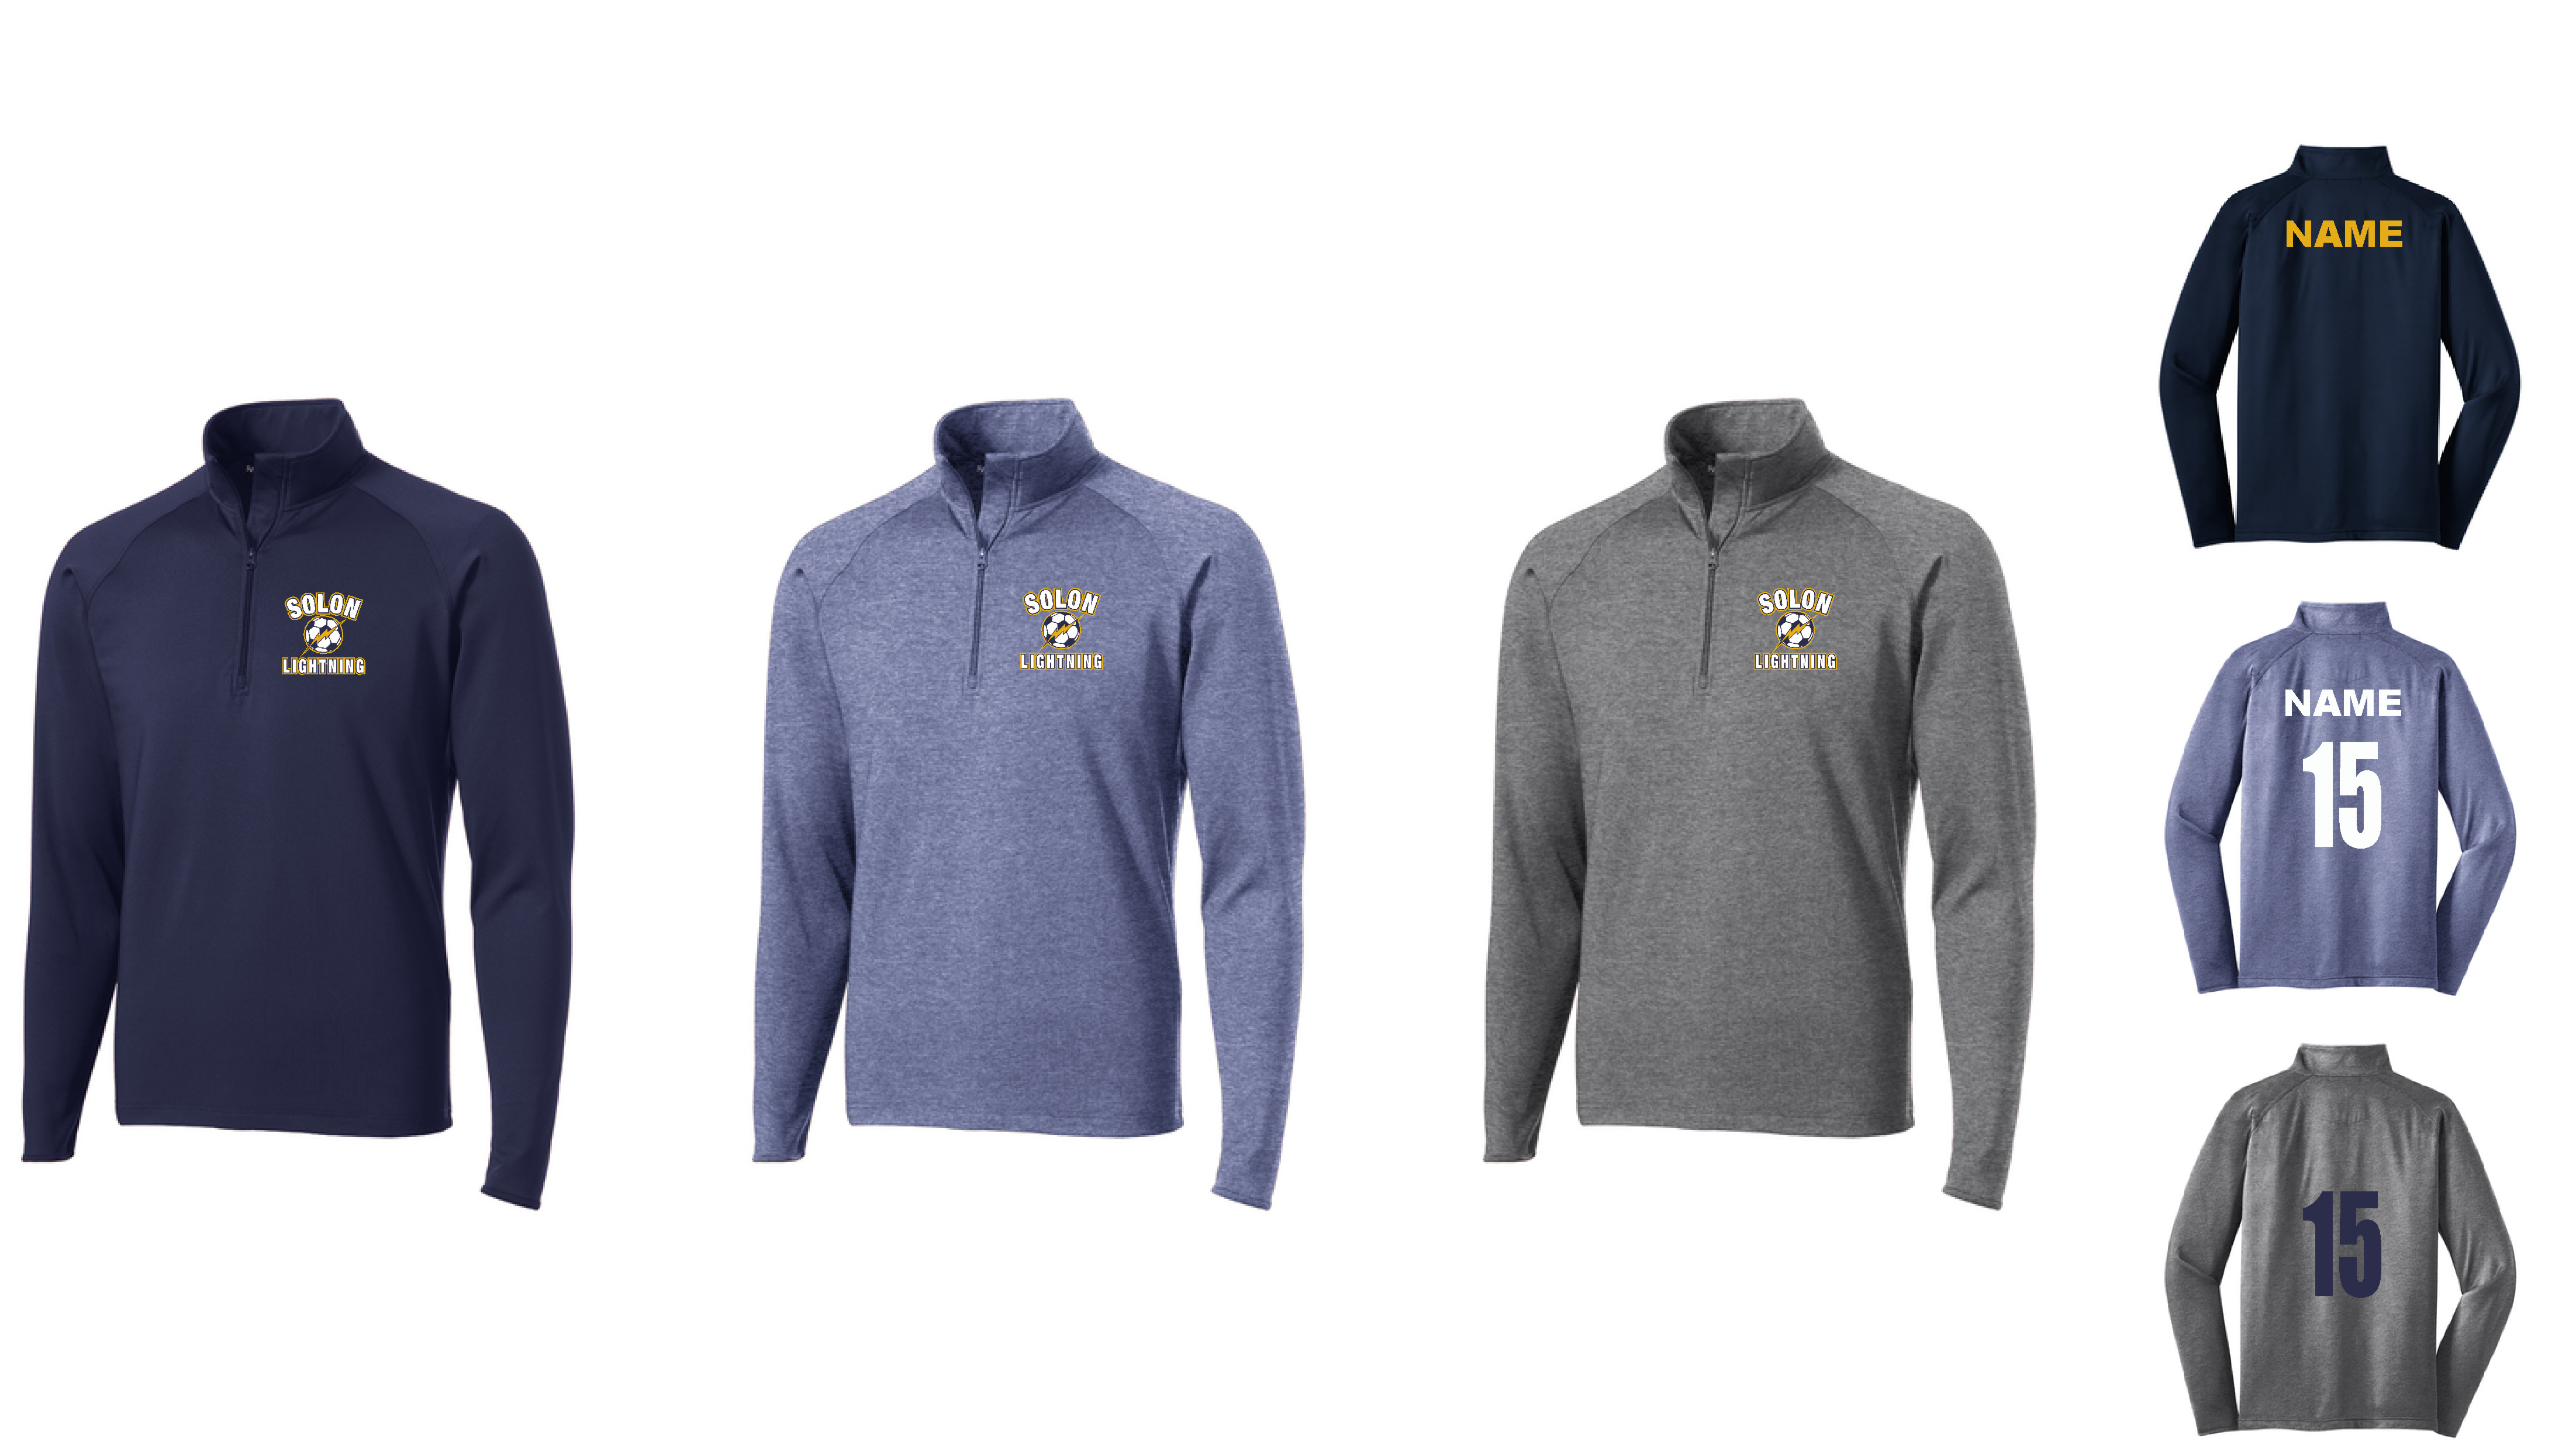 Solon Sport Tek Sport Wick Stretch 1 2 Zip Pullover Check out our sport tek selection for the very best in unique or custom, handmade pieces from our shops. solon sport tek sport wick stretch 1 2 zip pullover